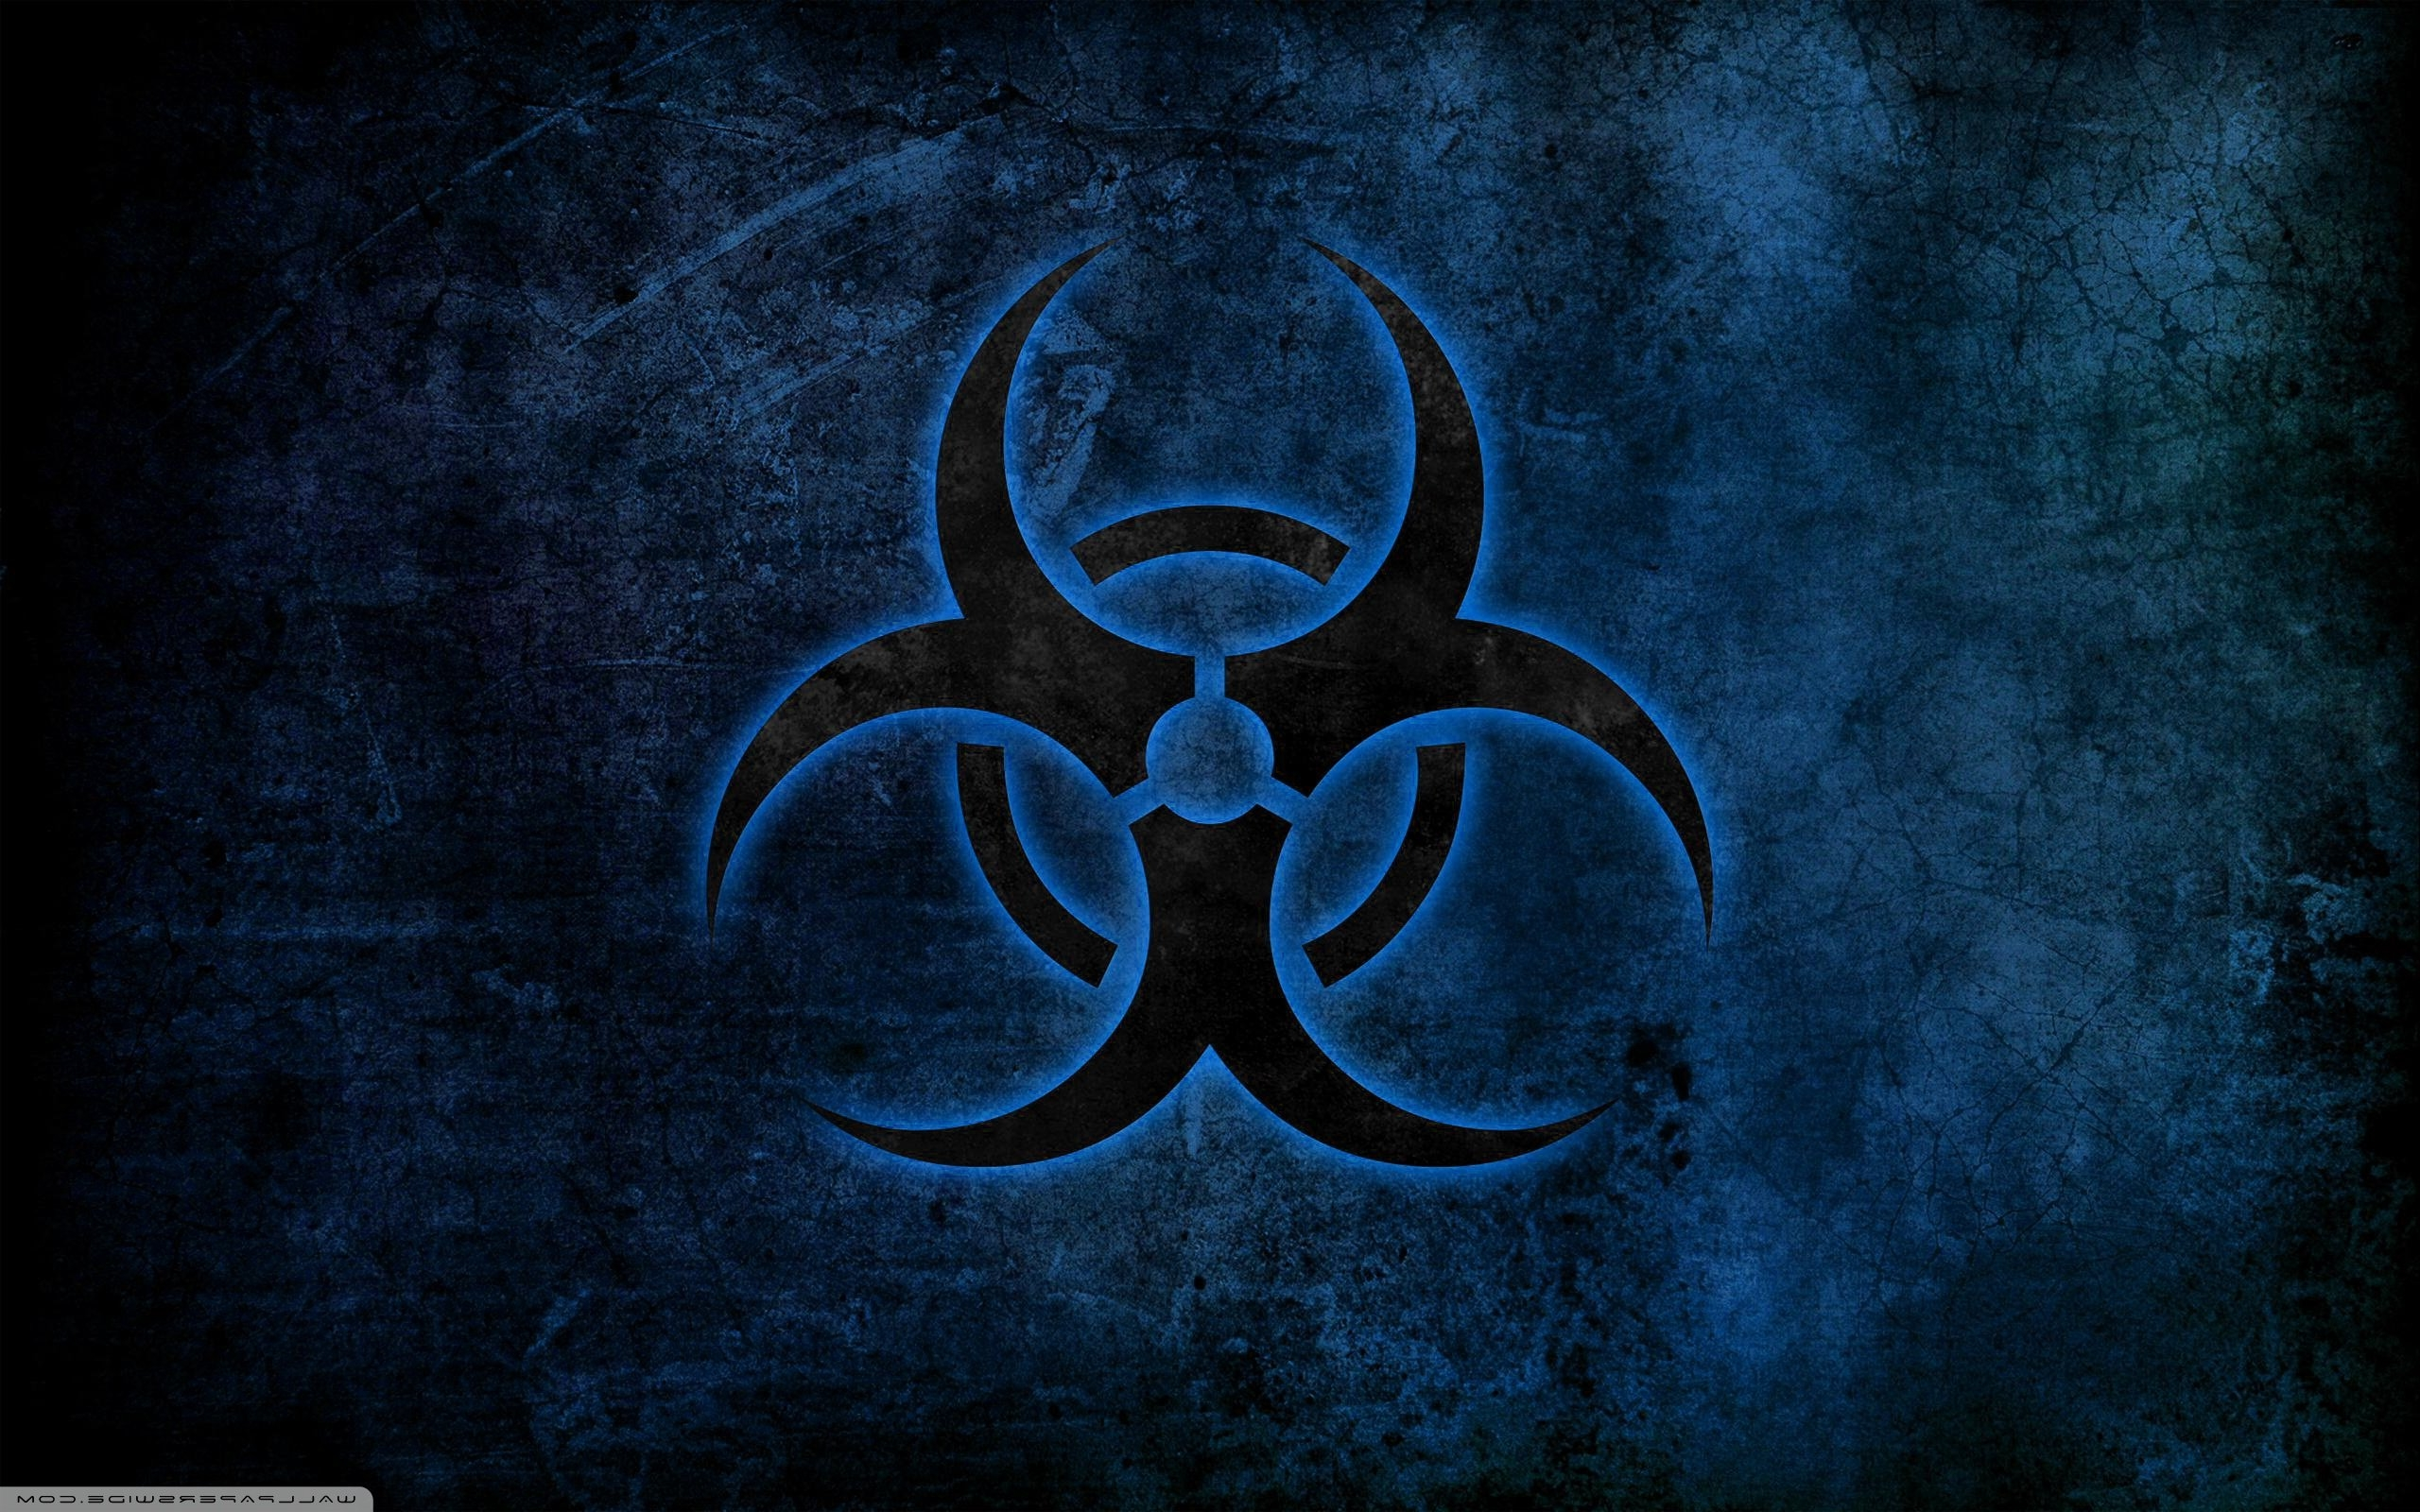 1600x900 Hd Wallpapers Cars Blue Biohazard Symbol Wallpapers Hd Desktop And Mobile